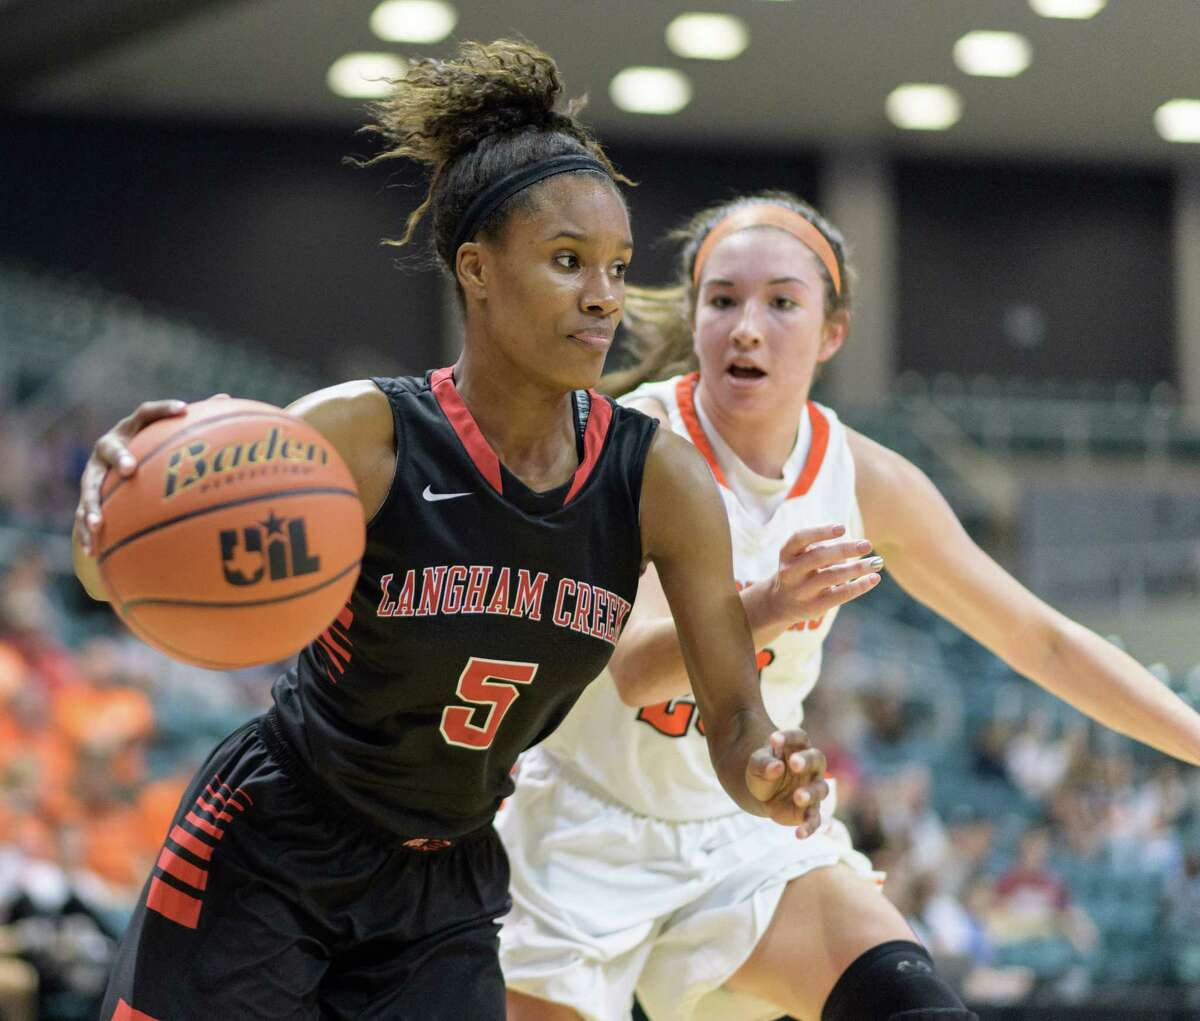 Dezeree White (5) of the Langham Creek Lobos drives to the basket against the Seven Lakes Spartans in Girls High School Basketball Playoffs on Tuesday, February 21, 2017 at the Merrell Center in Katy, Texas.